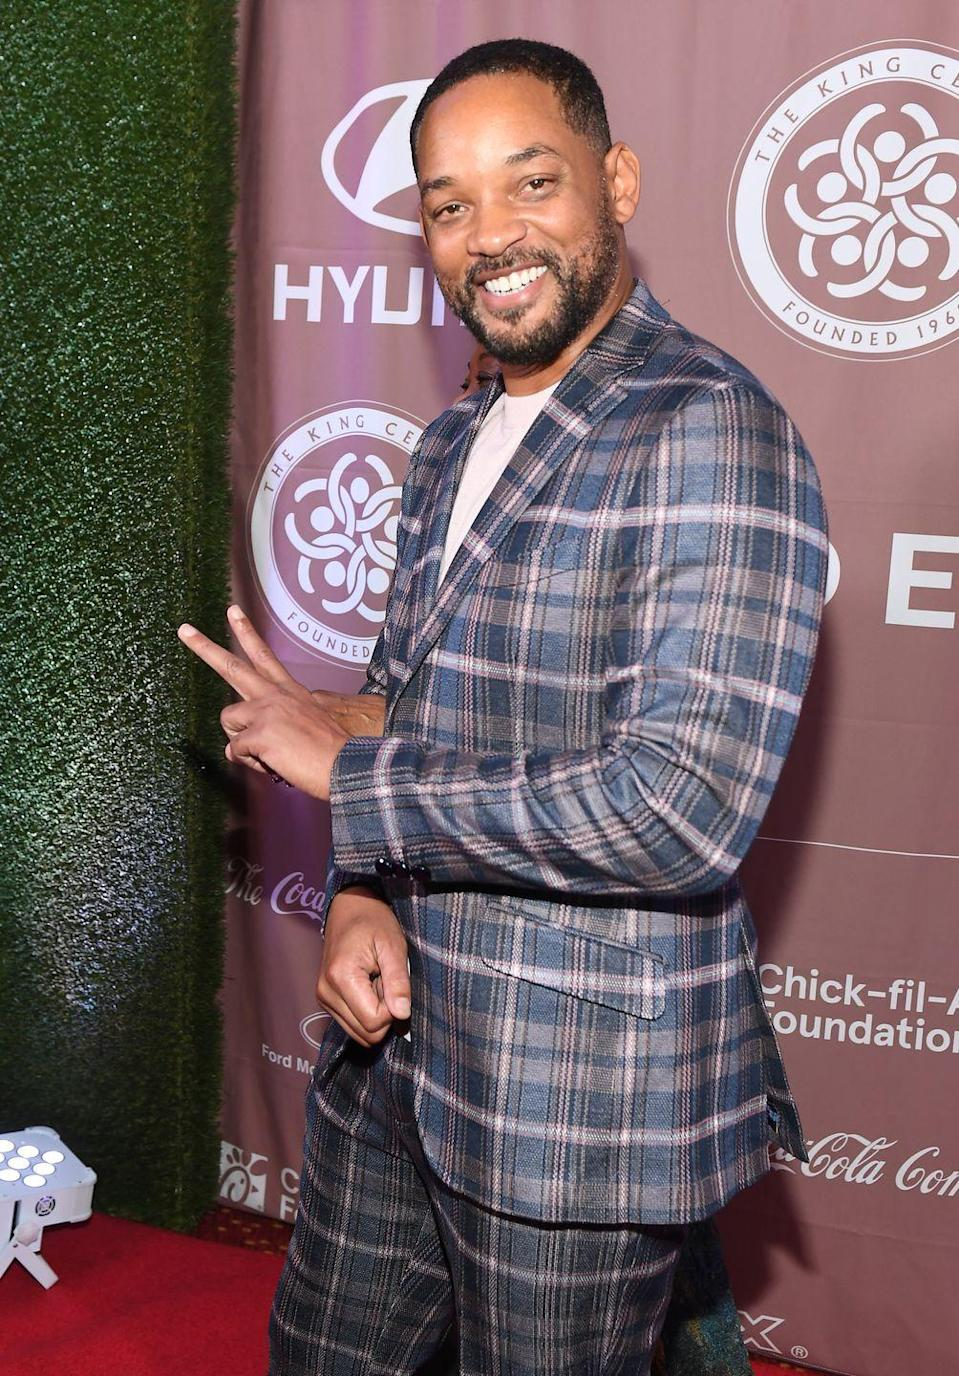 <p>Smith is one of the few A-list '90s stars who have managed to maintain a consistently successful career. Even though he's mostly left his music career behind, Smith is still a huge actor with roles in big films like <em>Aladdin</em> and <em>Suicide Squad. </em>Smith also married Jada Pinkett-Smith, and their two children, Willow and Jaden, are as famous as their parents. </p>